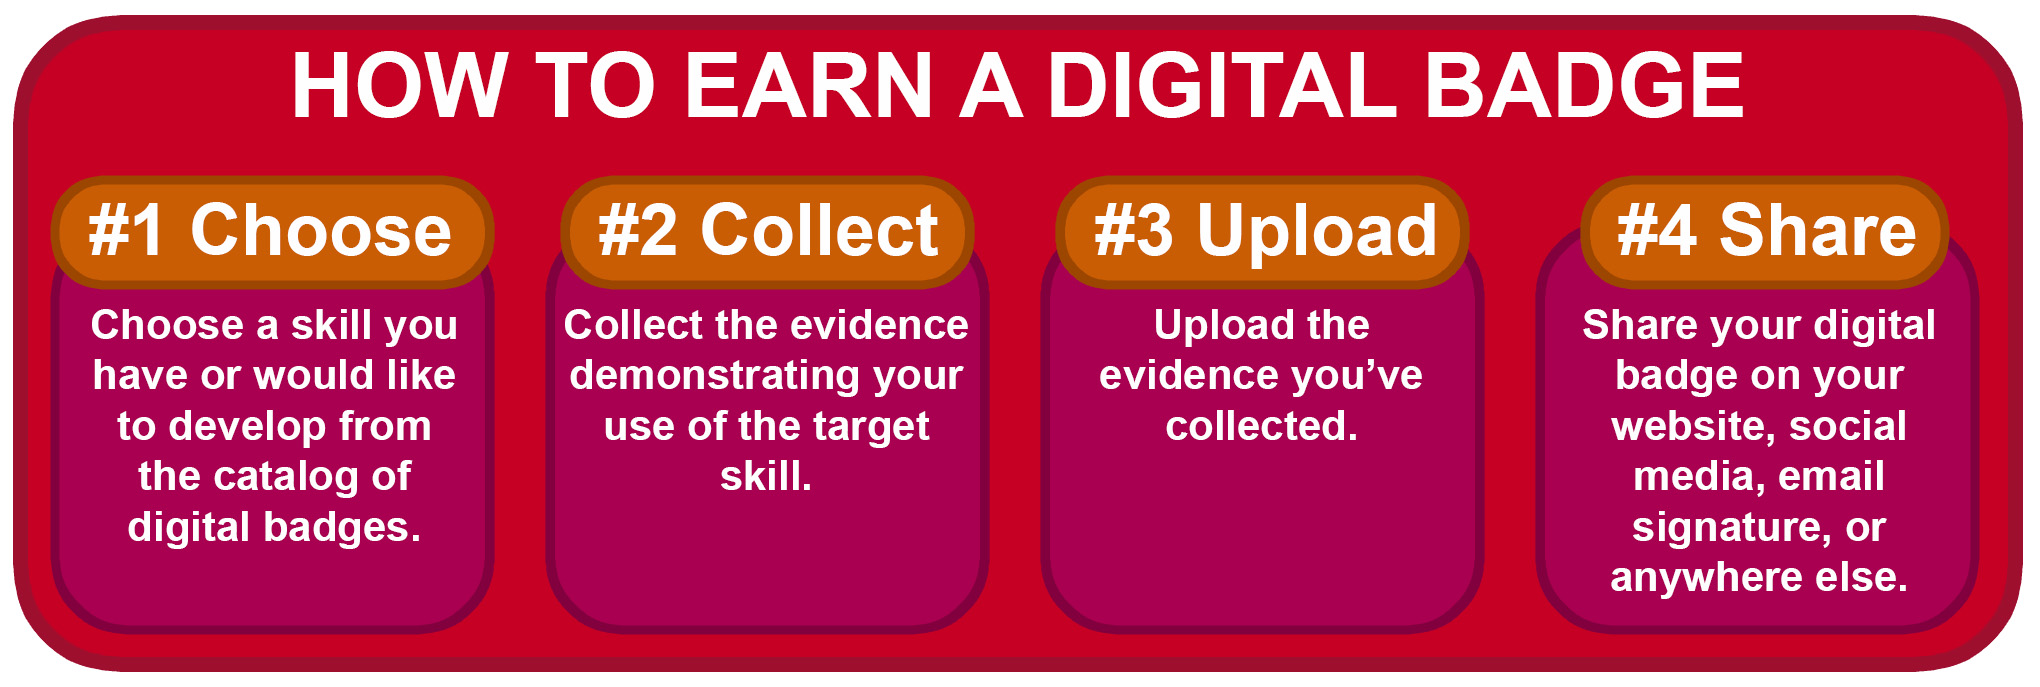 How to Earn a Digitial Badge